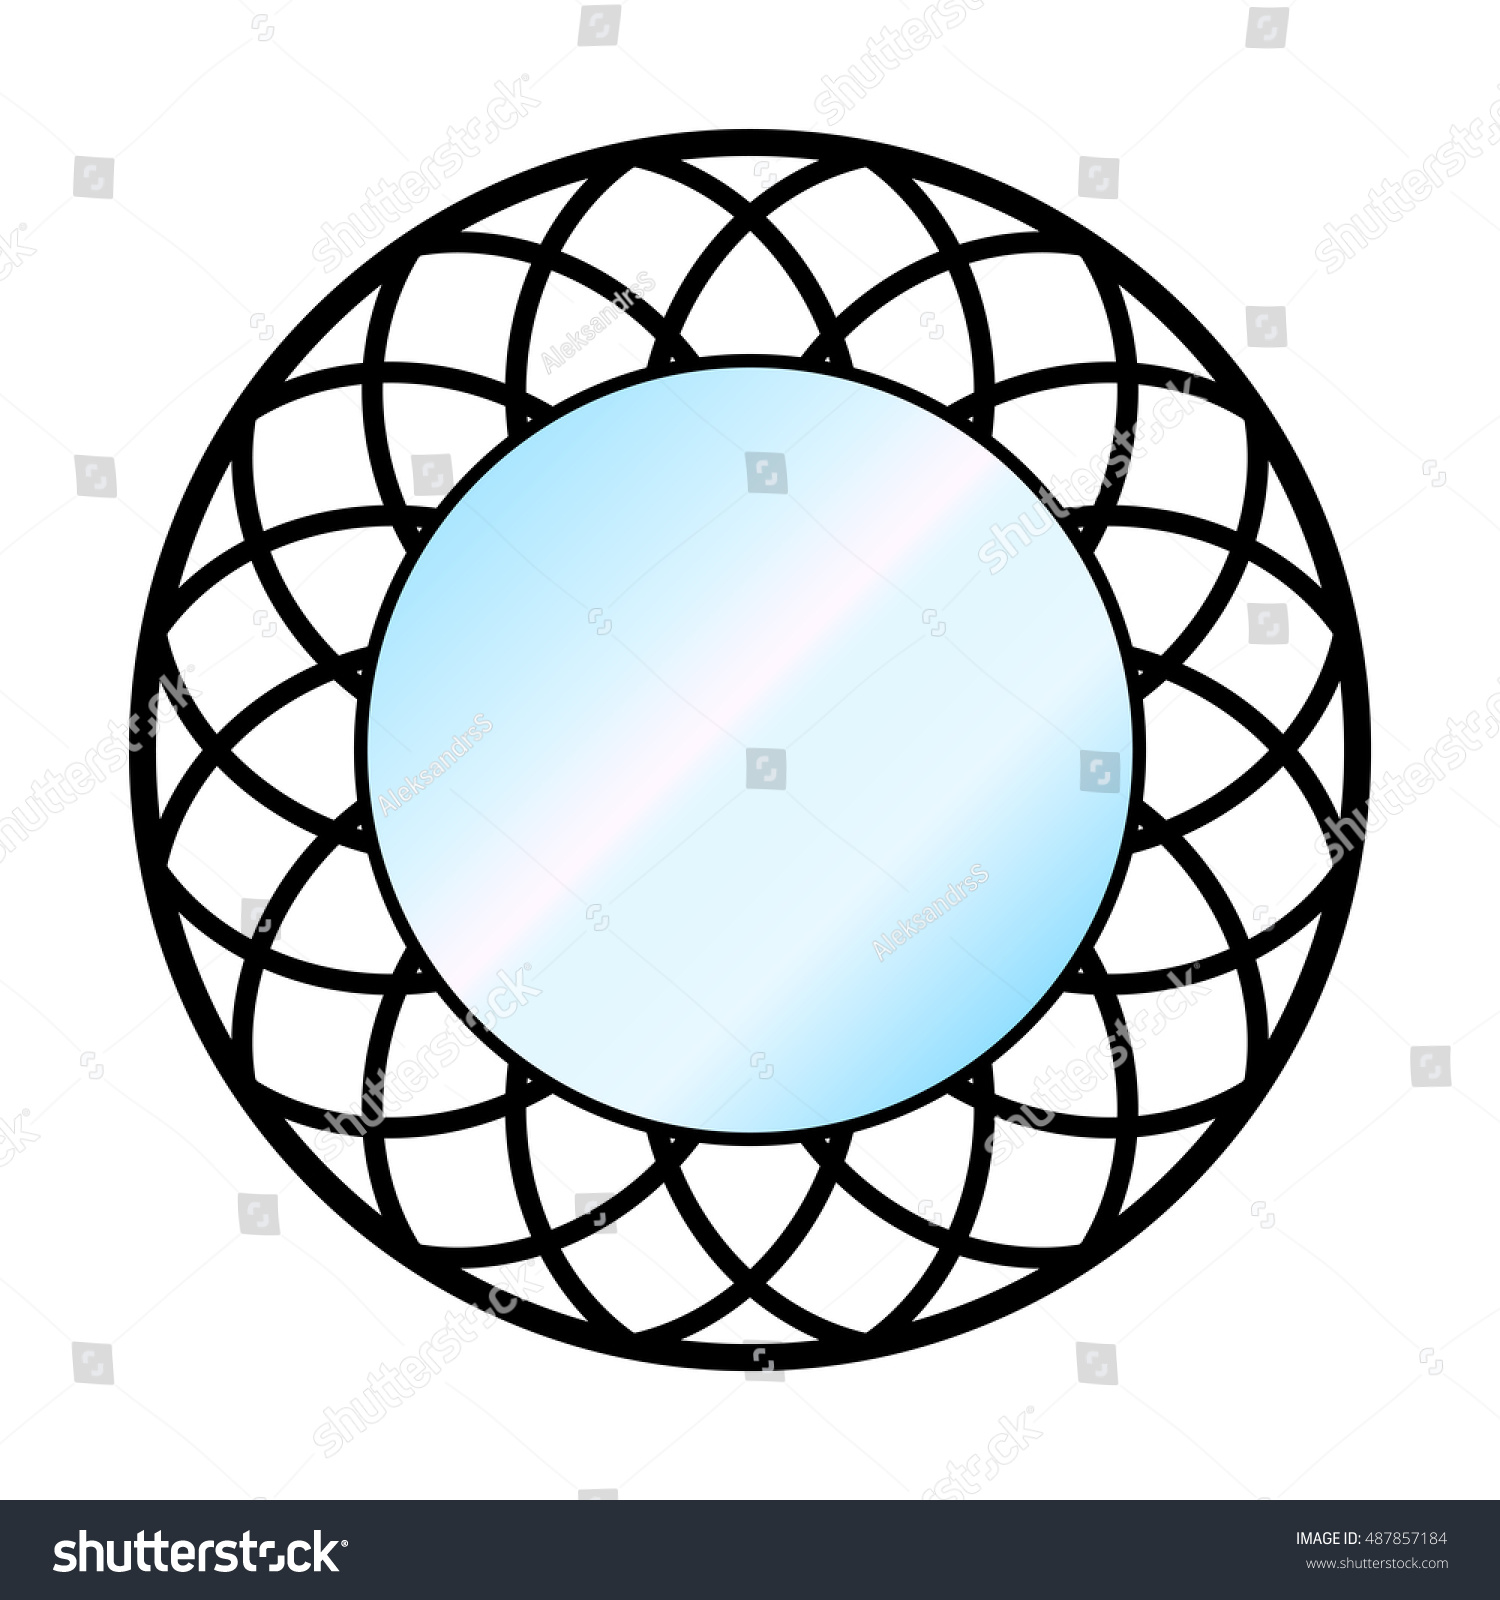 Mirrors on a wall gallery home wall decoration ideas vector illustration wall circle mirror on stock vector 487857184 vector illustration of a wall circle mirror amipublicfo Gallery